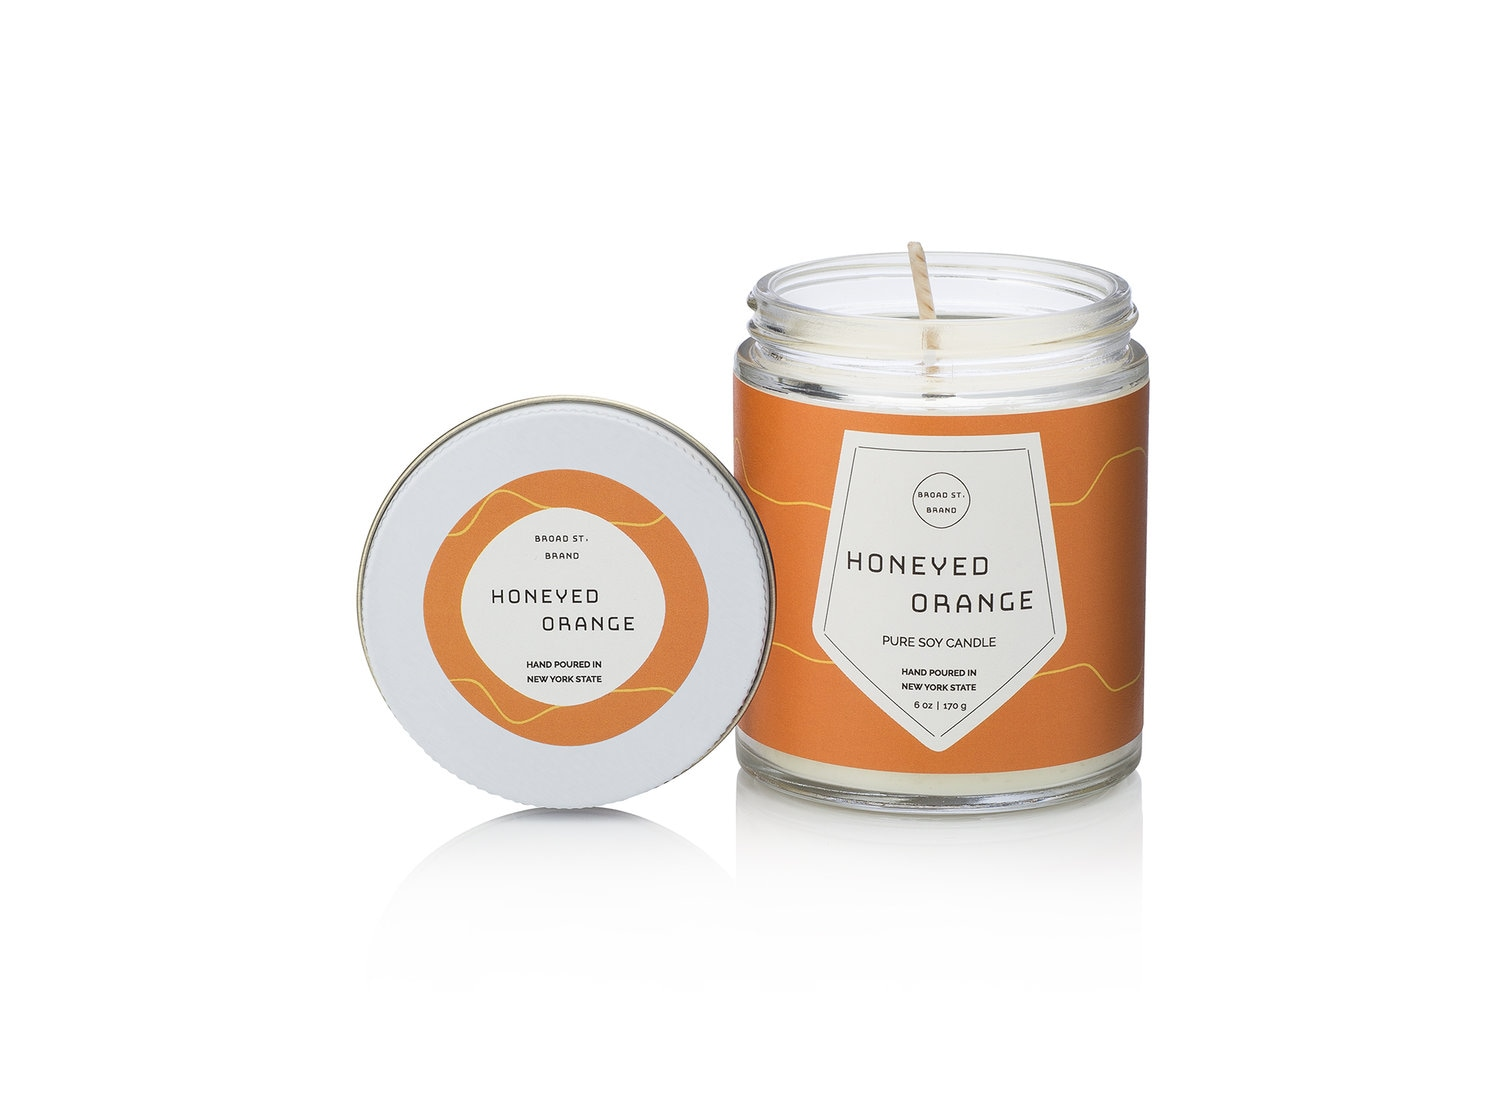 Kobo Honeyed Orange Candle